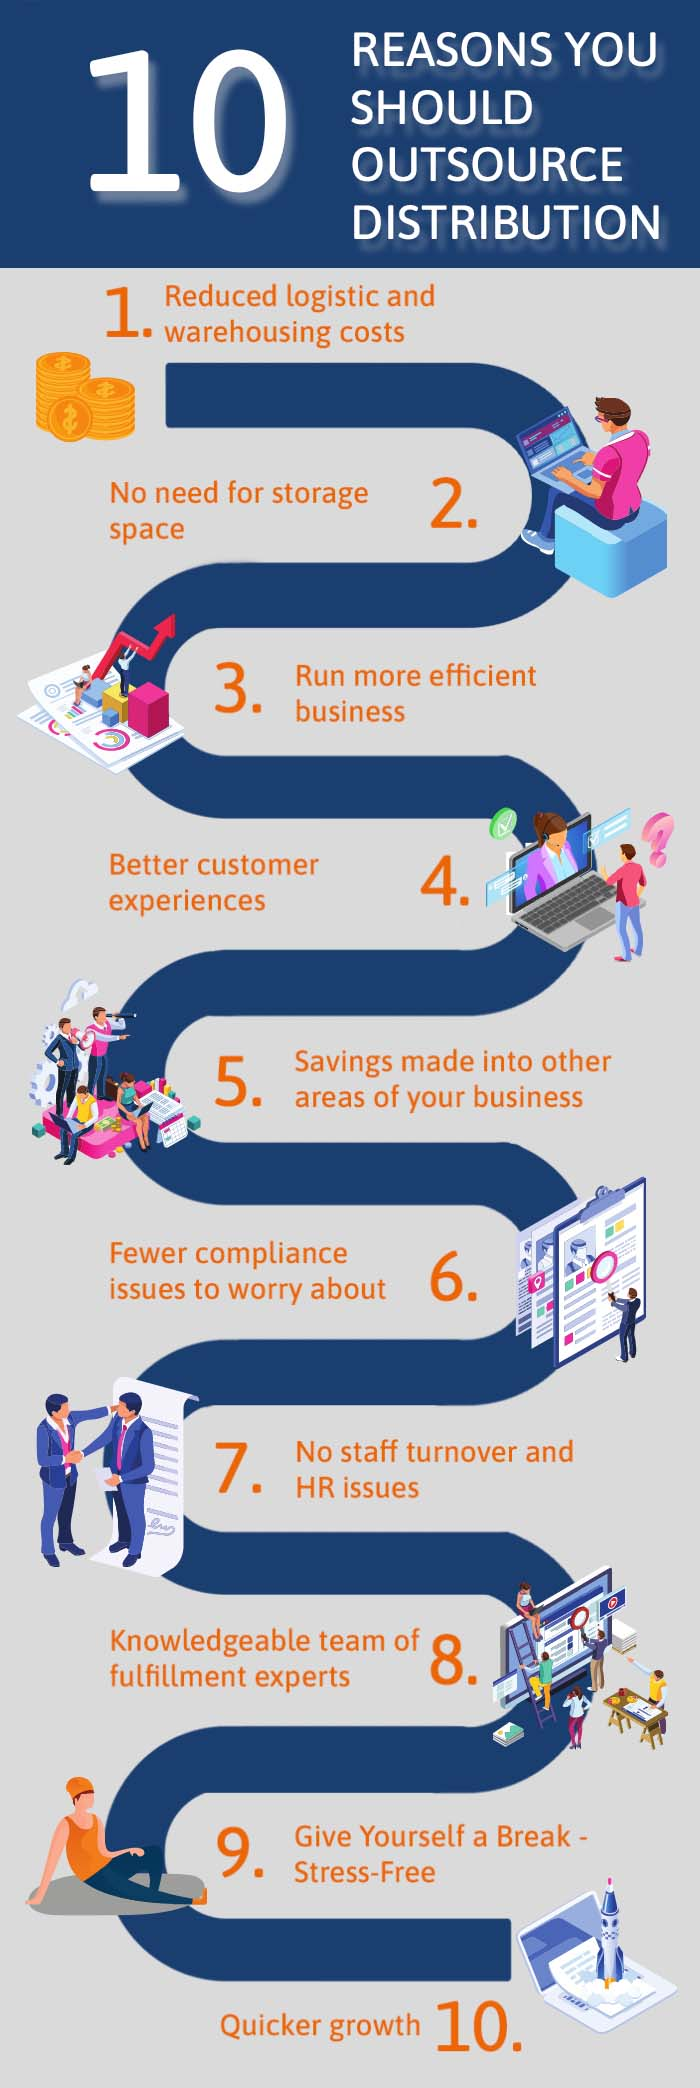 openstore24 - get a quote - 10 reasons you should outsource distribution